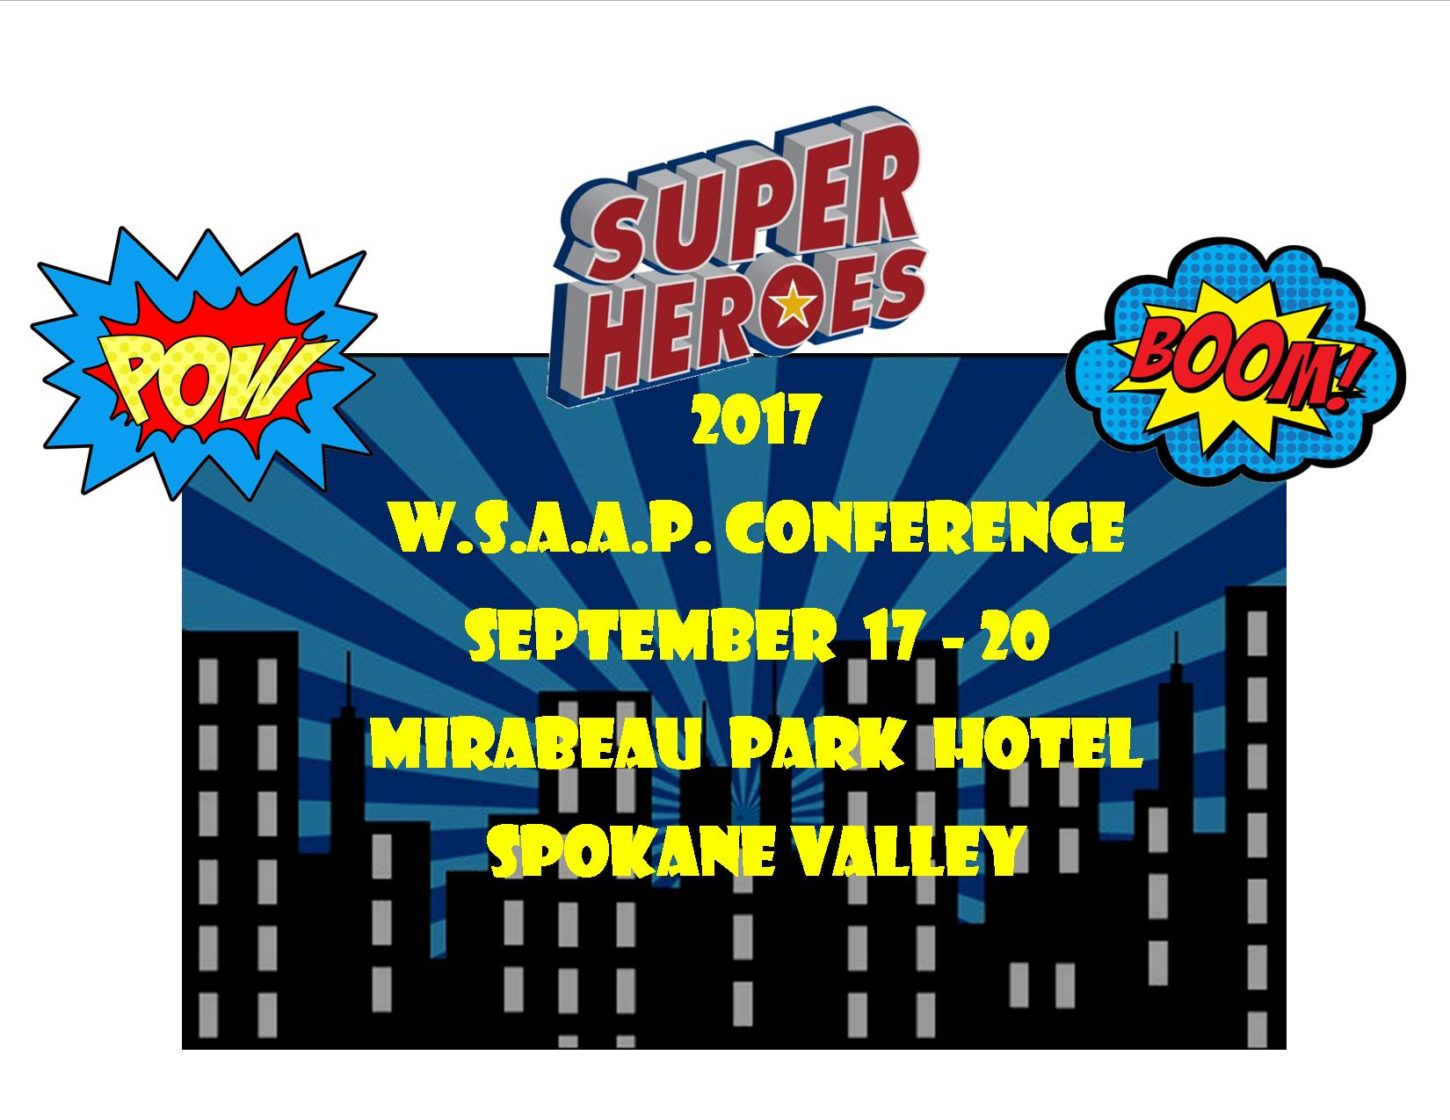 2017 Conf super heroes website